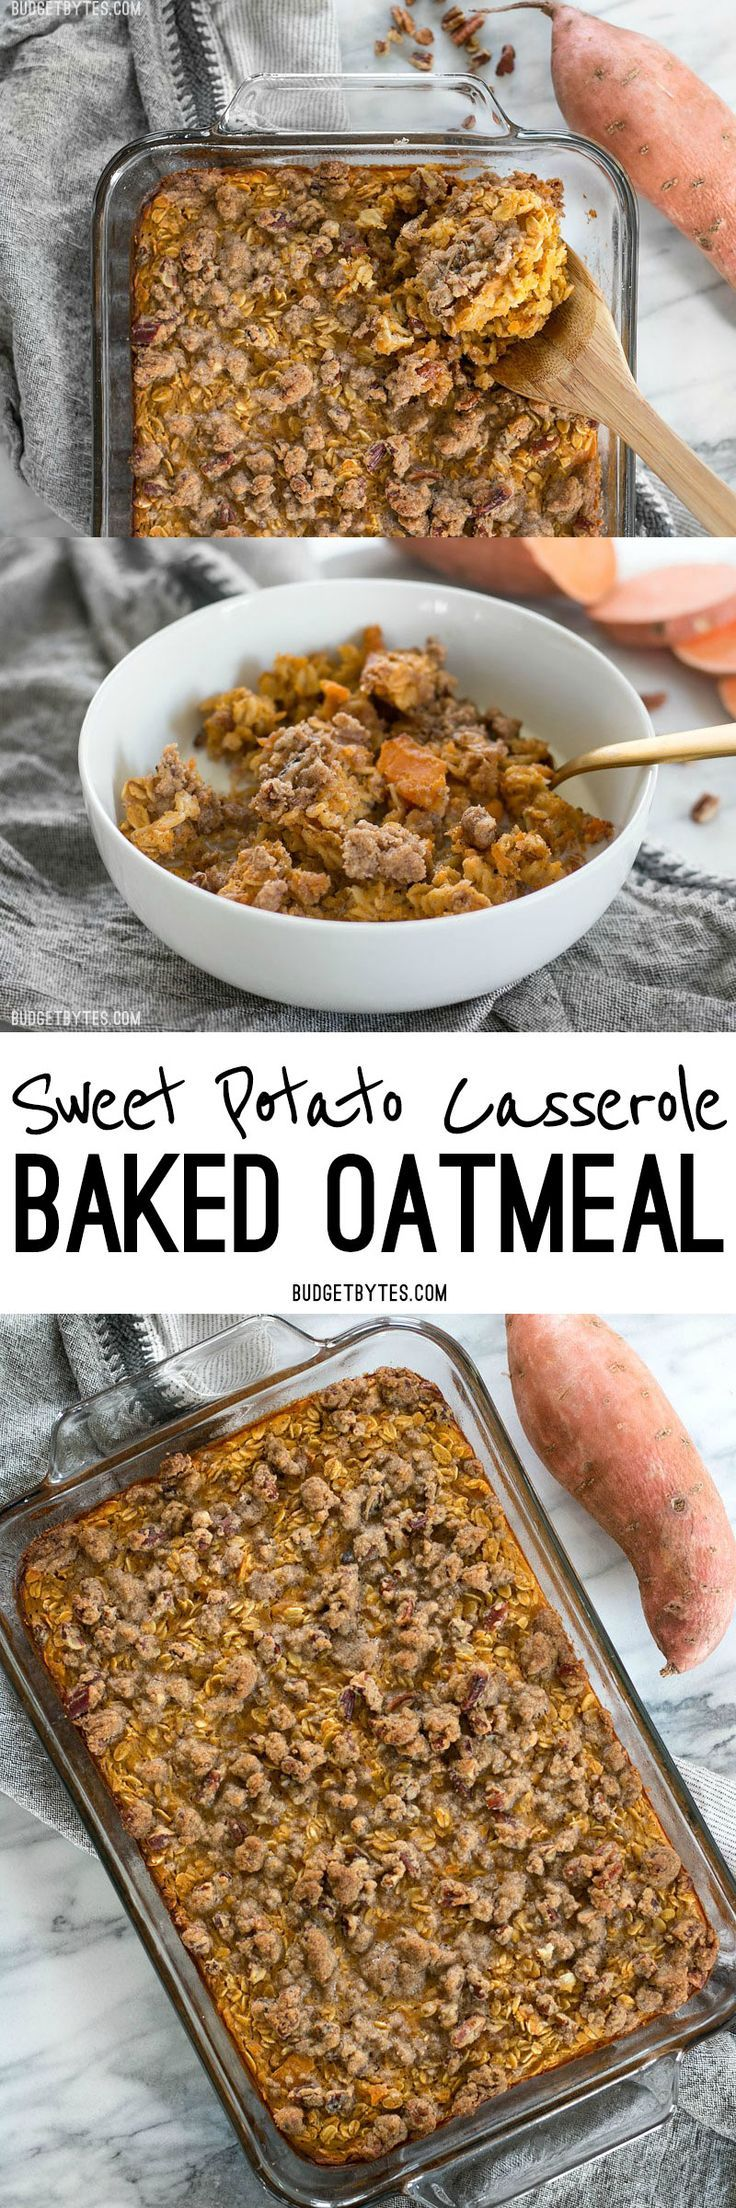 Sweet Potato Casserole Baked Oatmeal is a great way to have your favorite Thanksgiving side as a nutrient packed breakfast. @budgetbytes